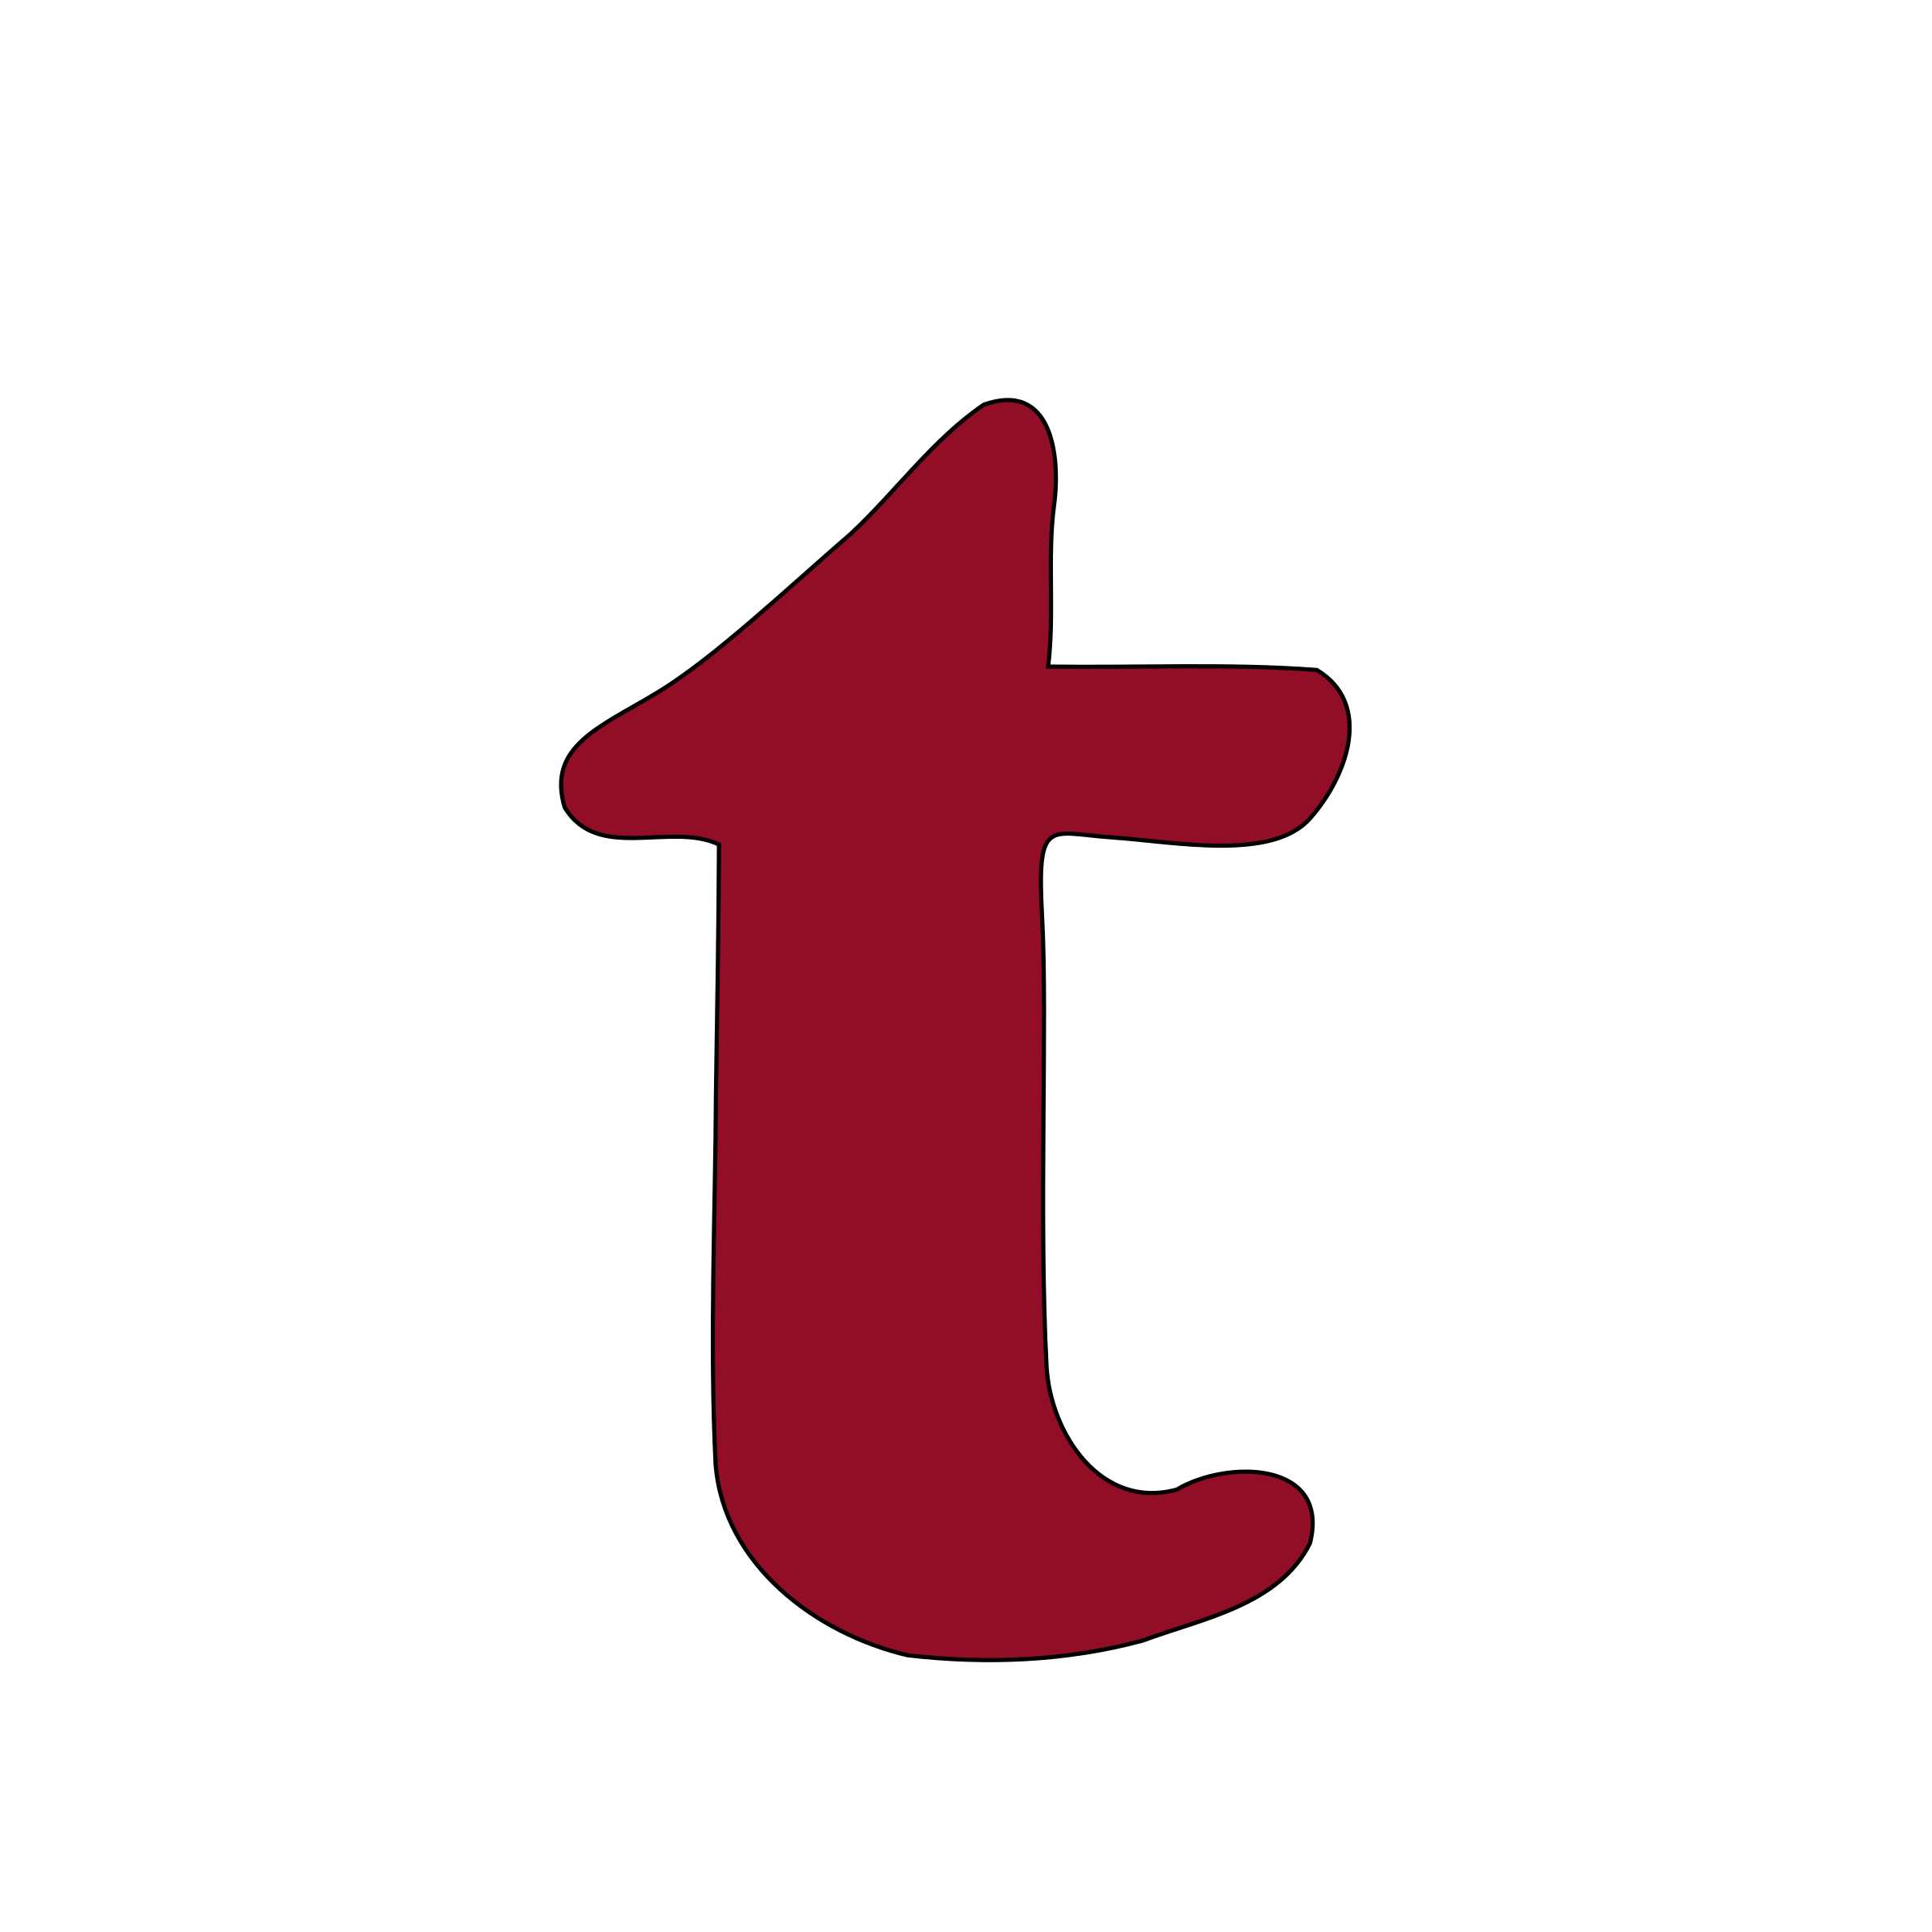 Lowercase T Clipart.